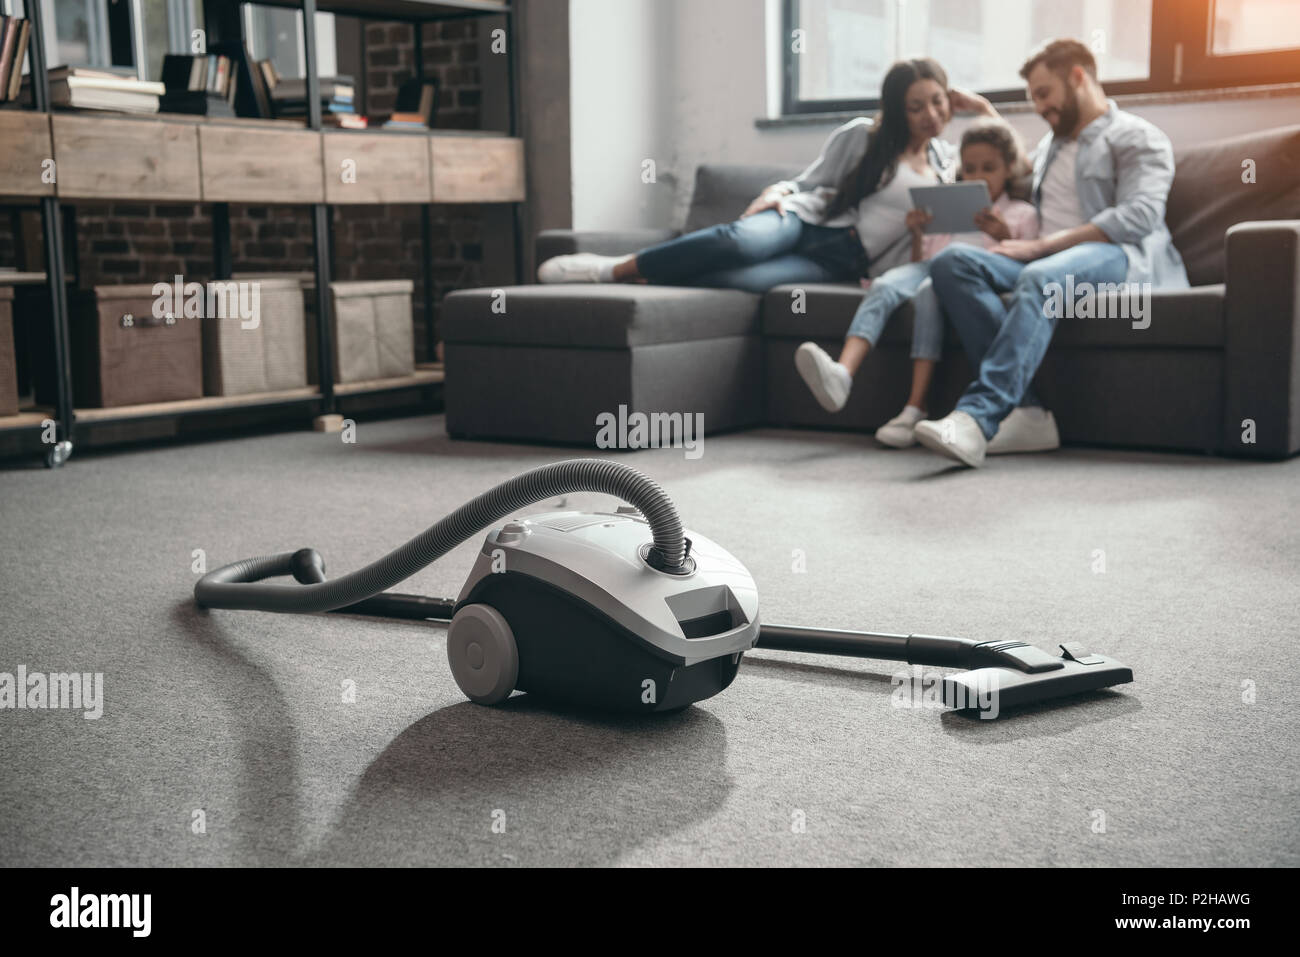 Where To Buy Sofa Vacuum Cleaner Couch Vacuum Cleaner Cushion With Couch Vacuum Cleaner